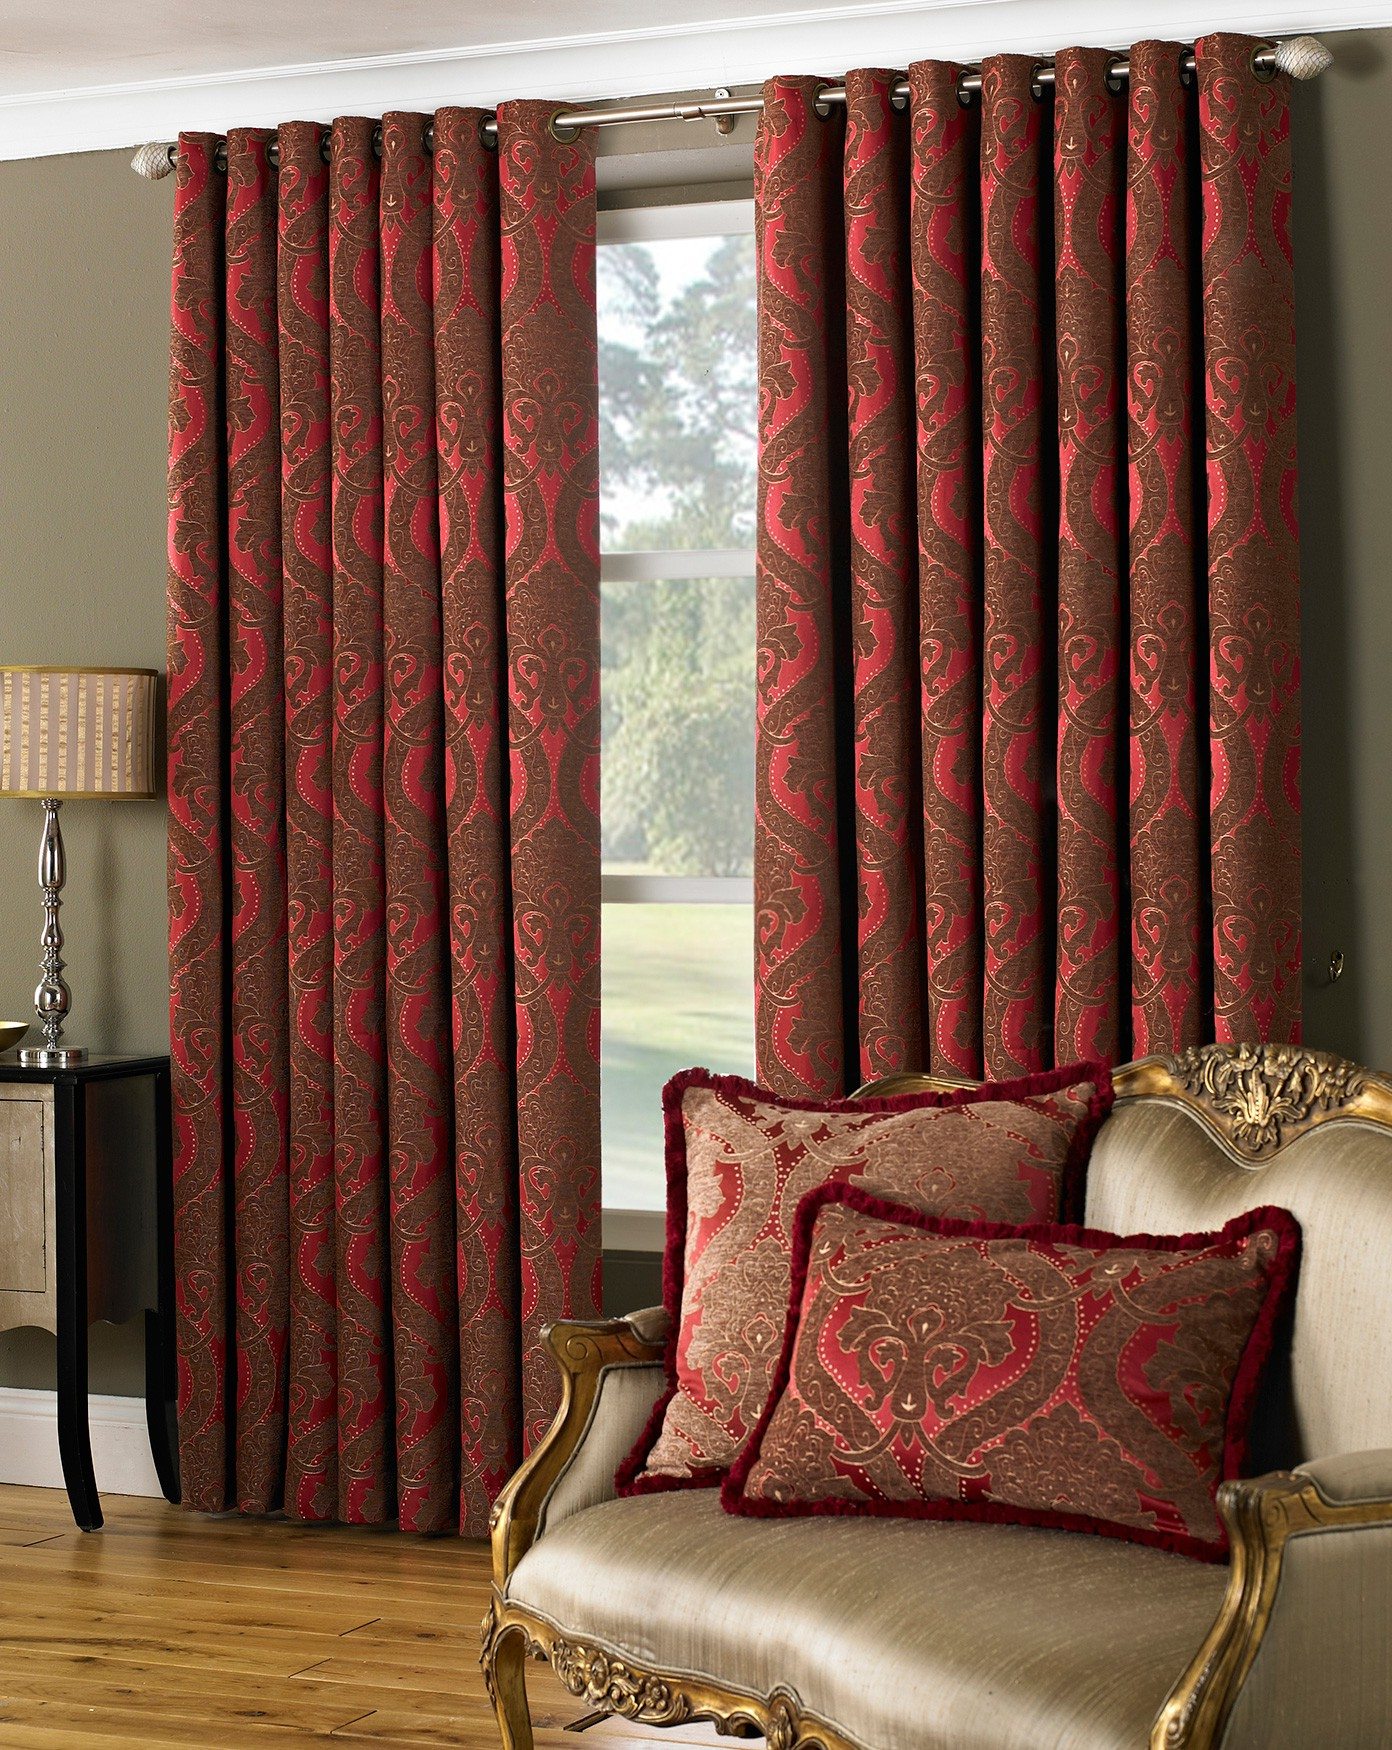 Living Room Curtains : Burgundy Curtains for Living Room  Roy Home Design